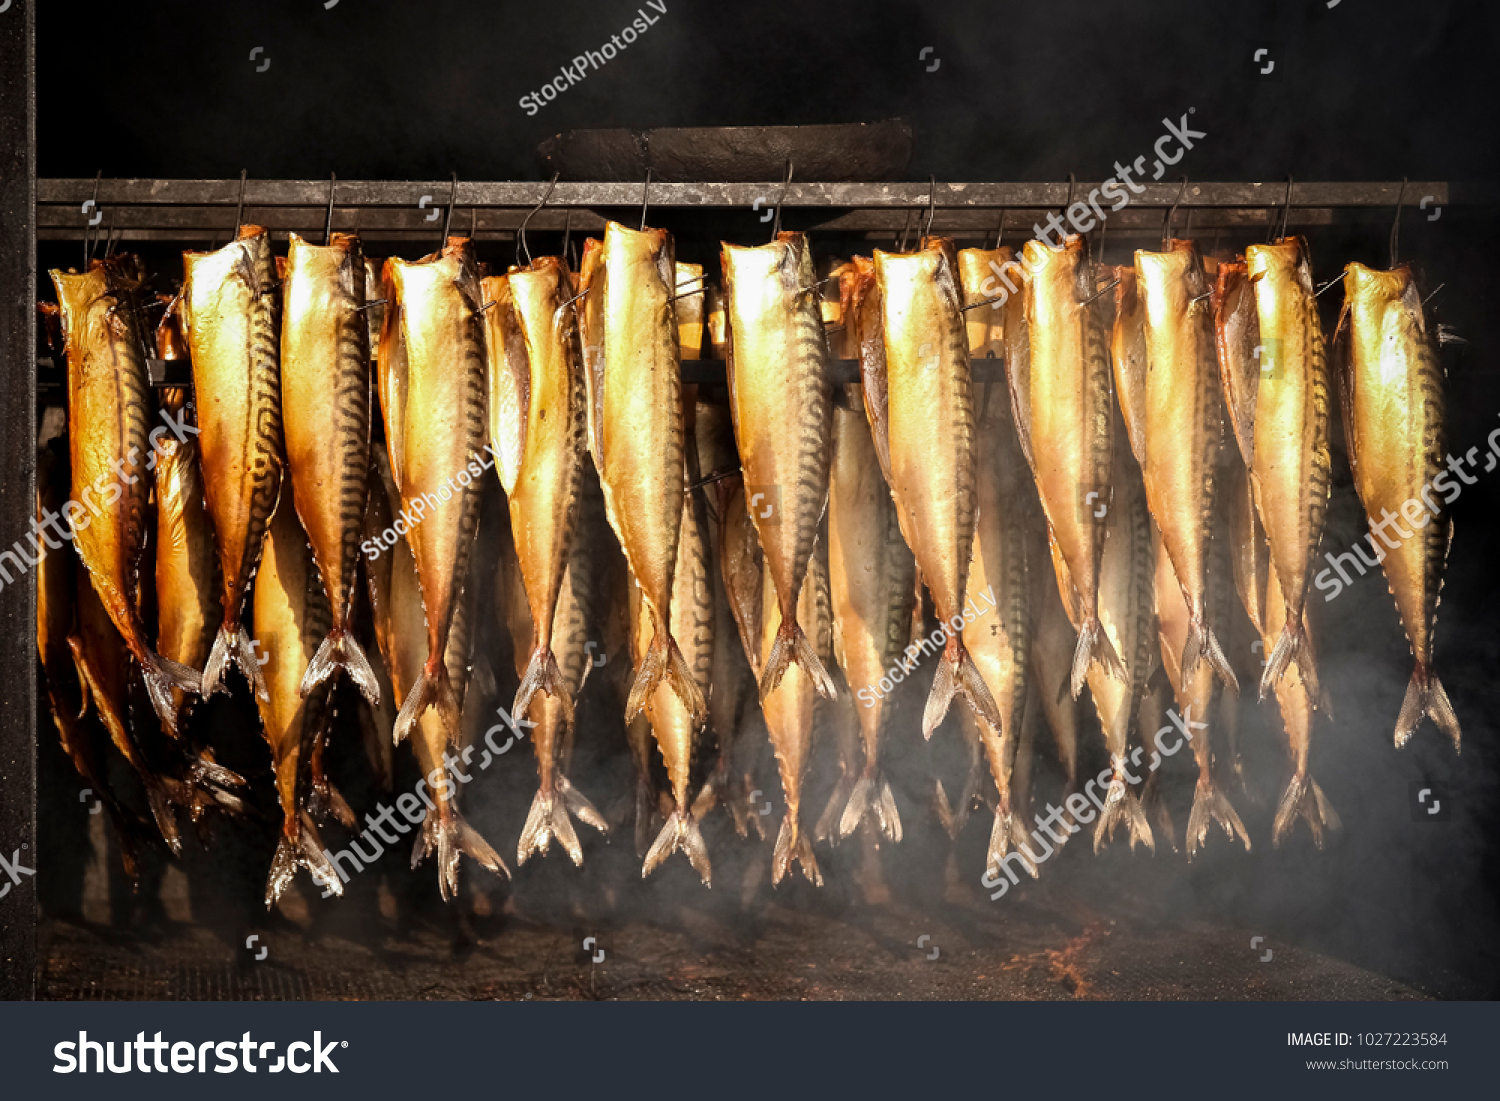 How to smoke fish in smokehouse What can smoke fish 57